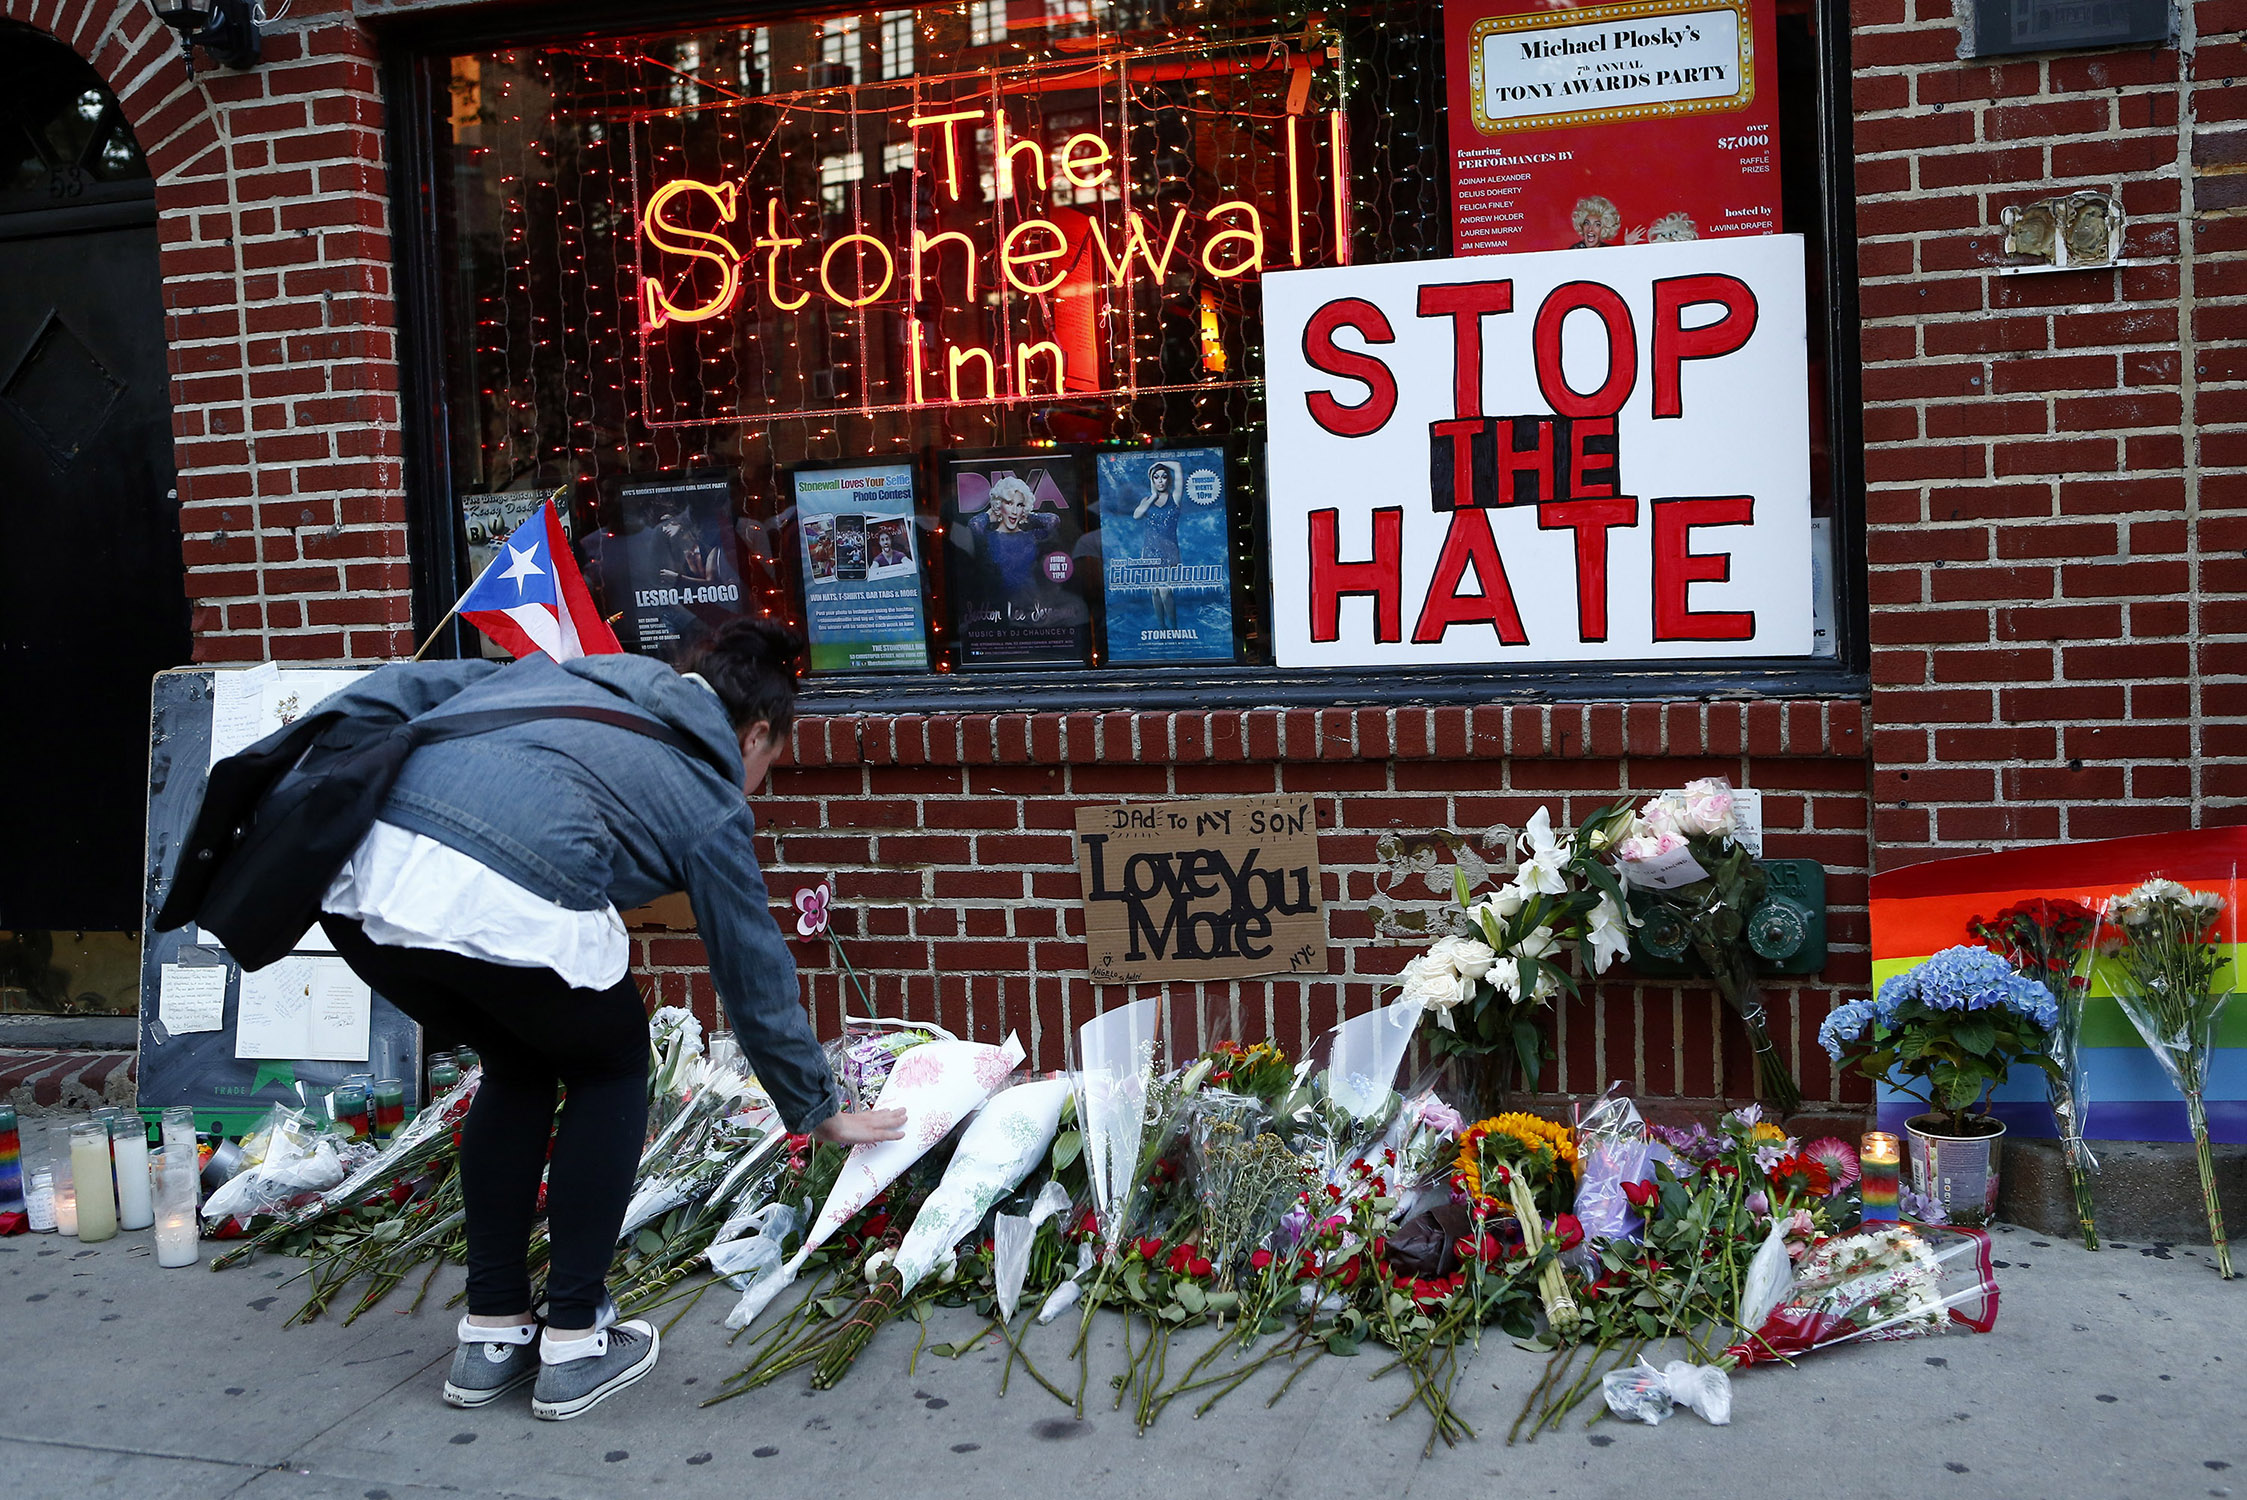 Flowers are placed at a make-shift memorial in front of the Stonewall Inn.